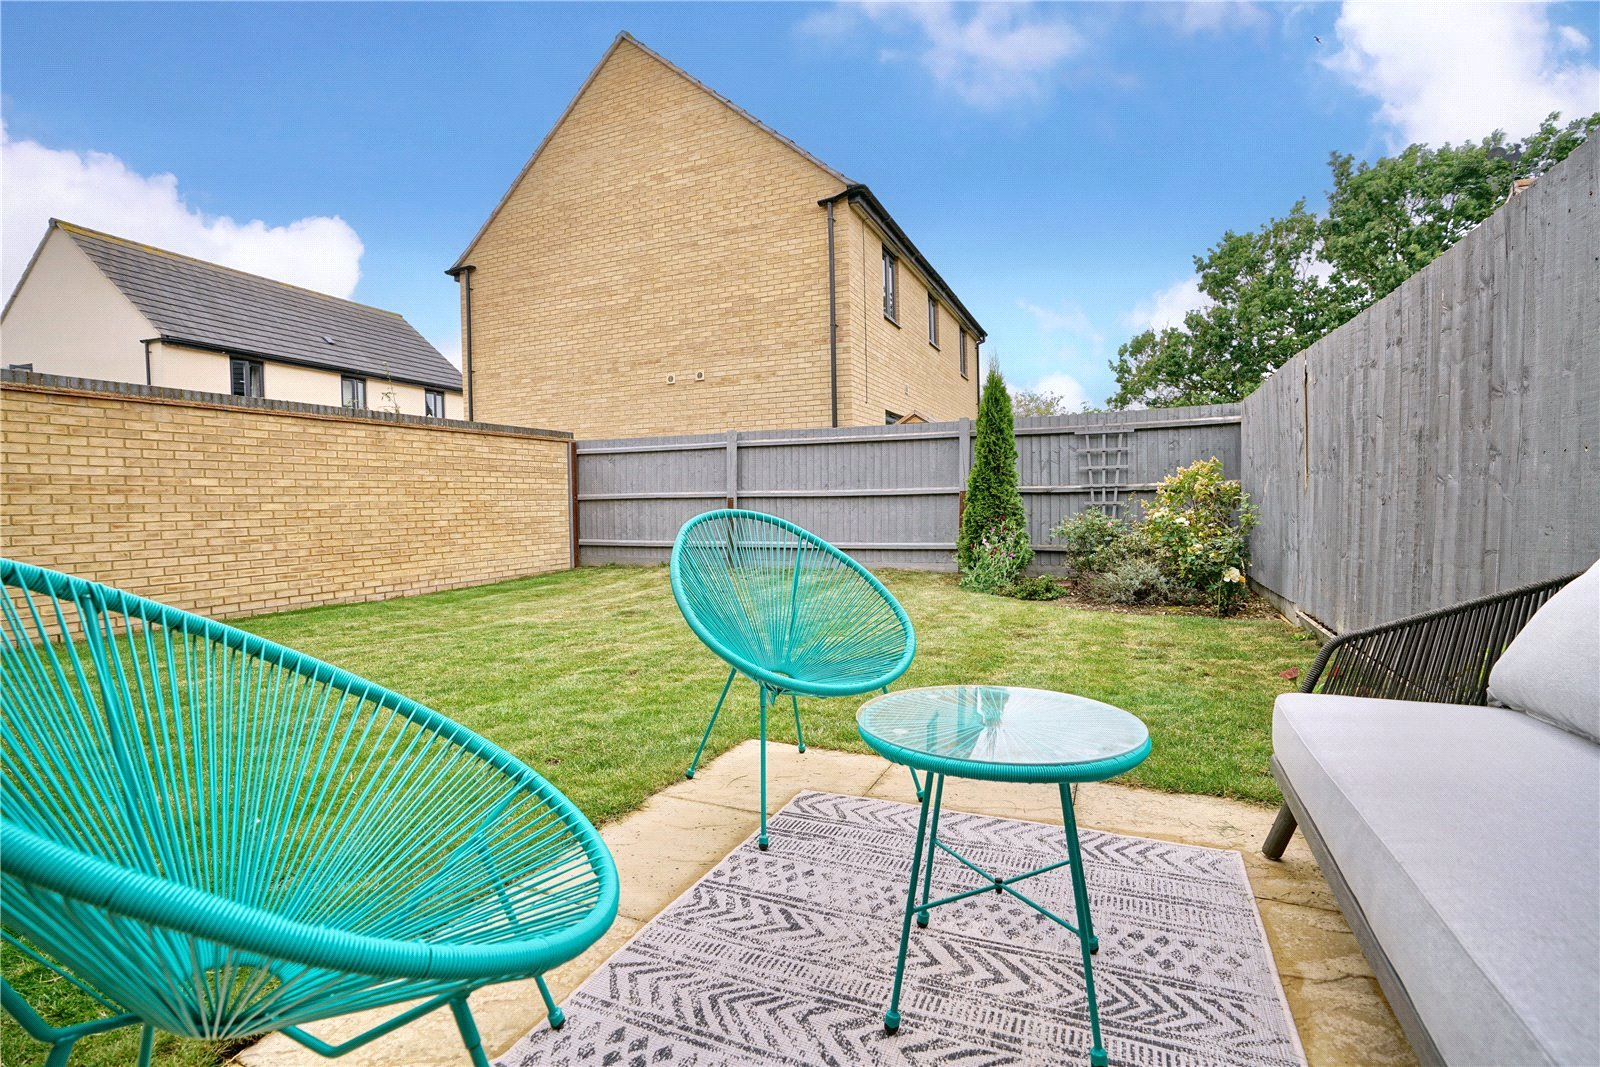 3 bed house for sale in St. Ives, PE27 5DL 10